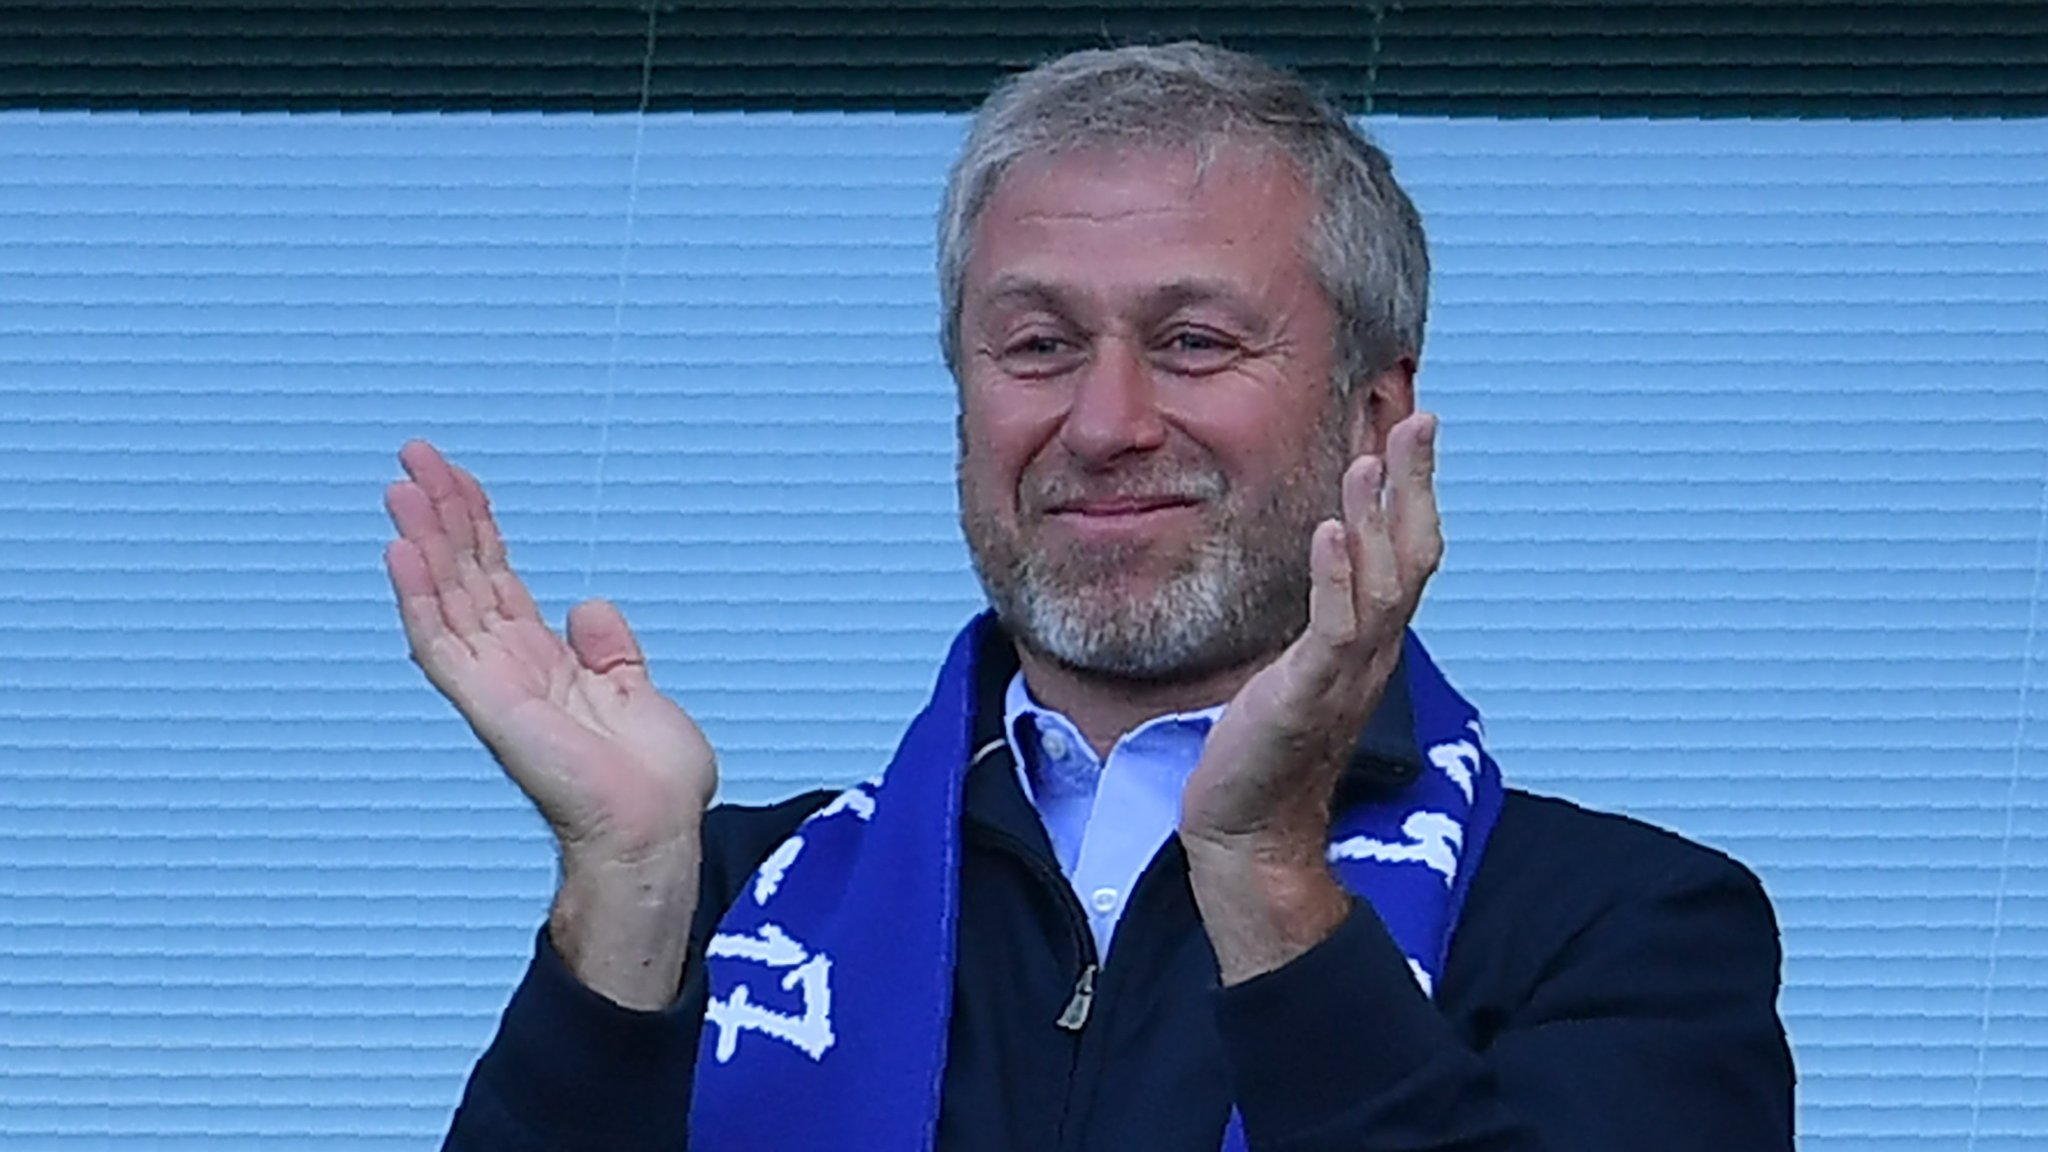 Antonio Conte, Maurizio Sarri and Roman Abramovich: What's going on at Chelsea?